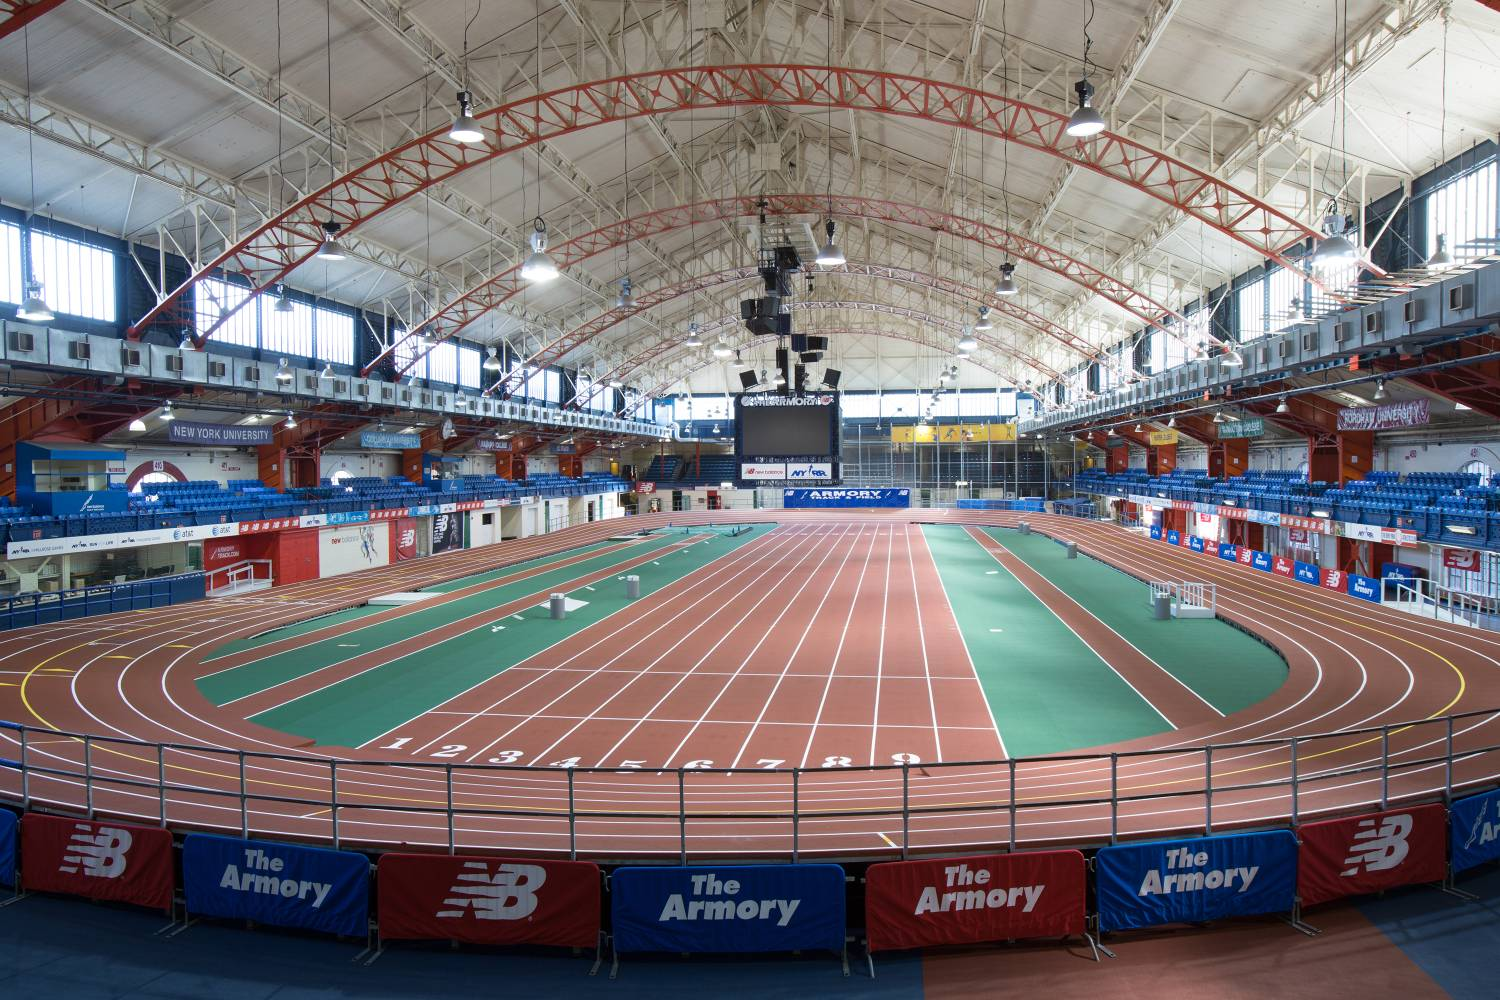 The Armory Foundation